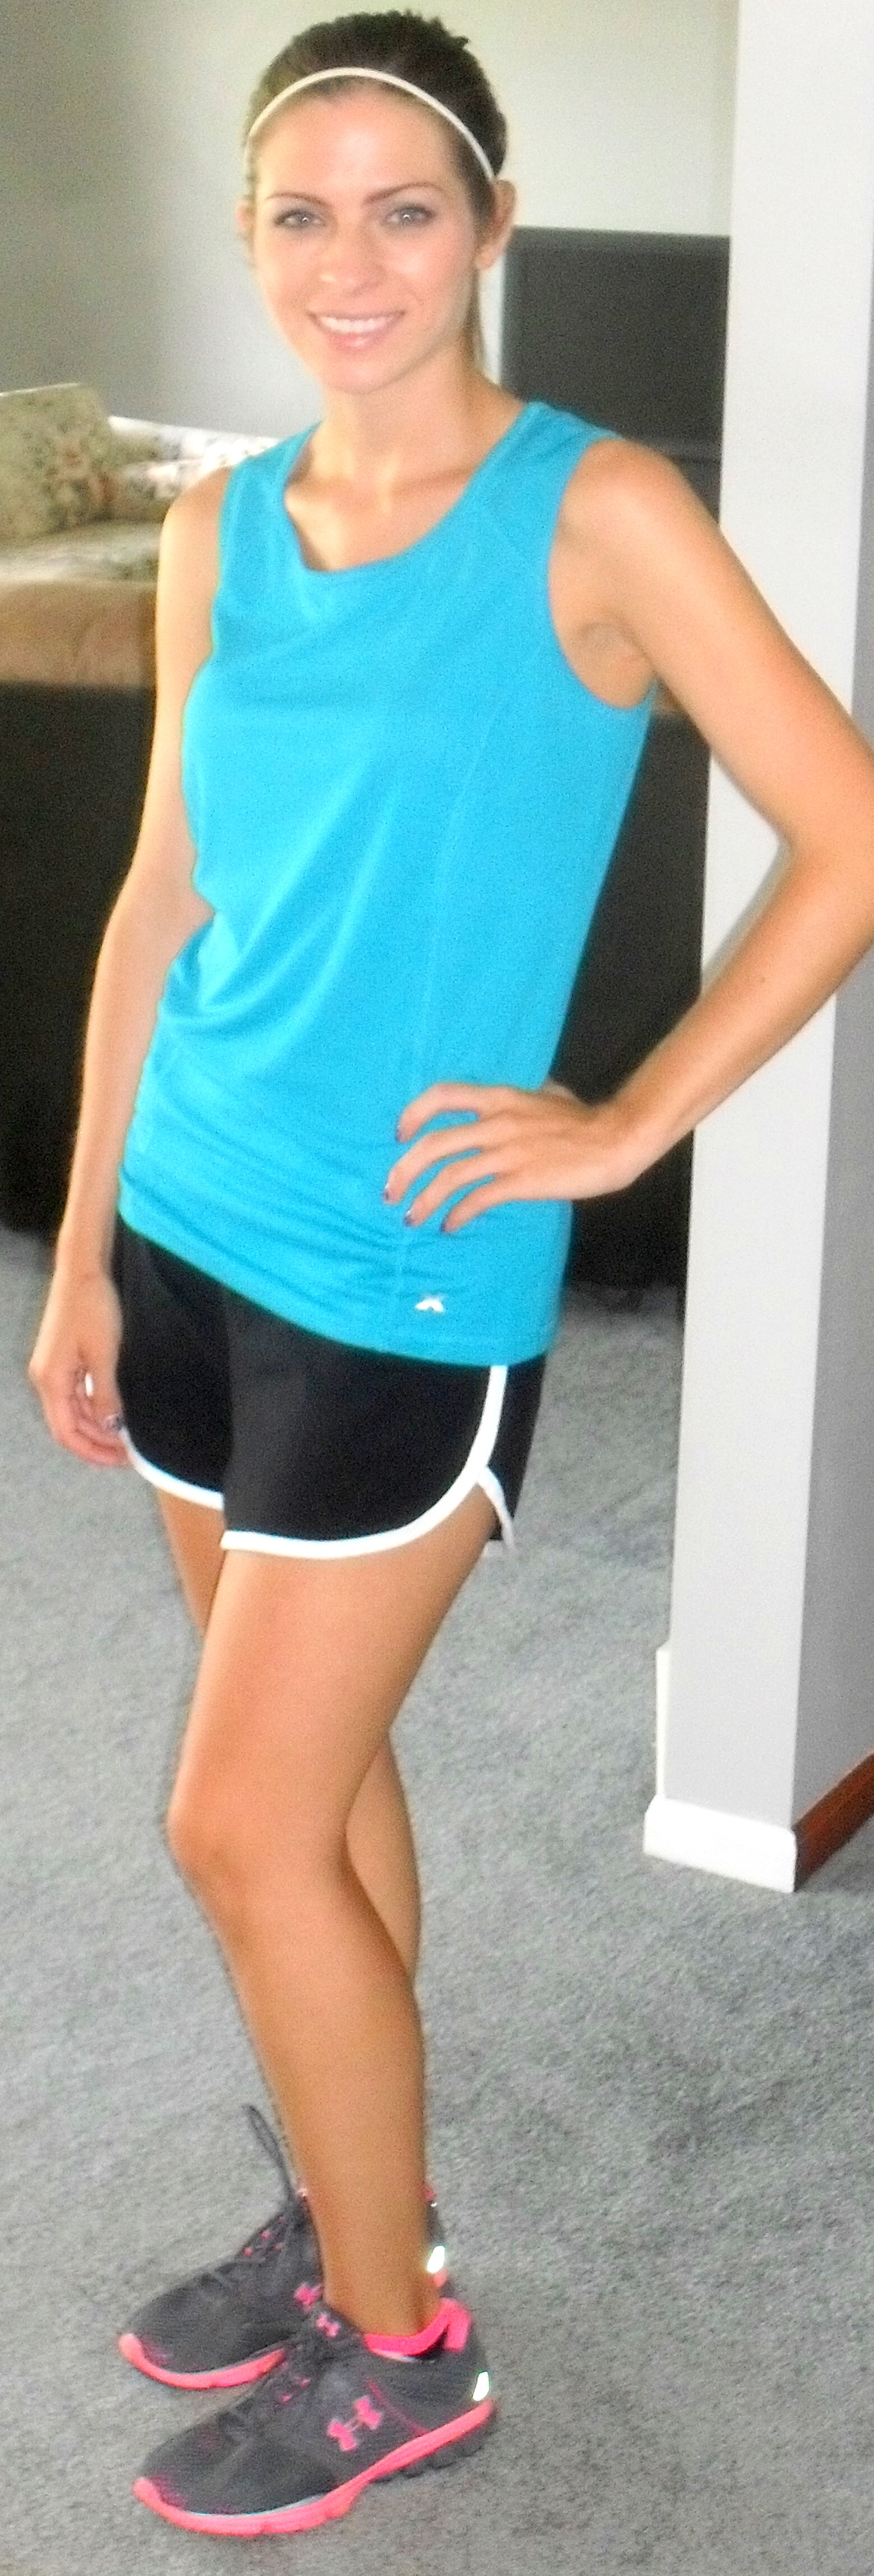 Workout running outfit